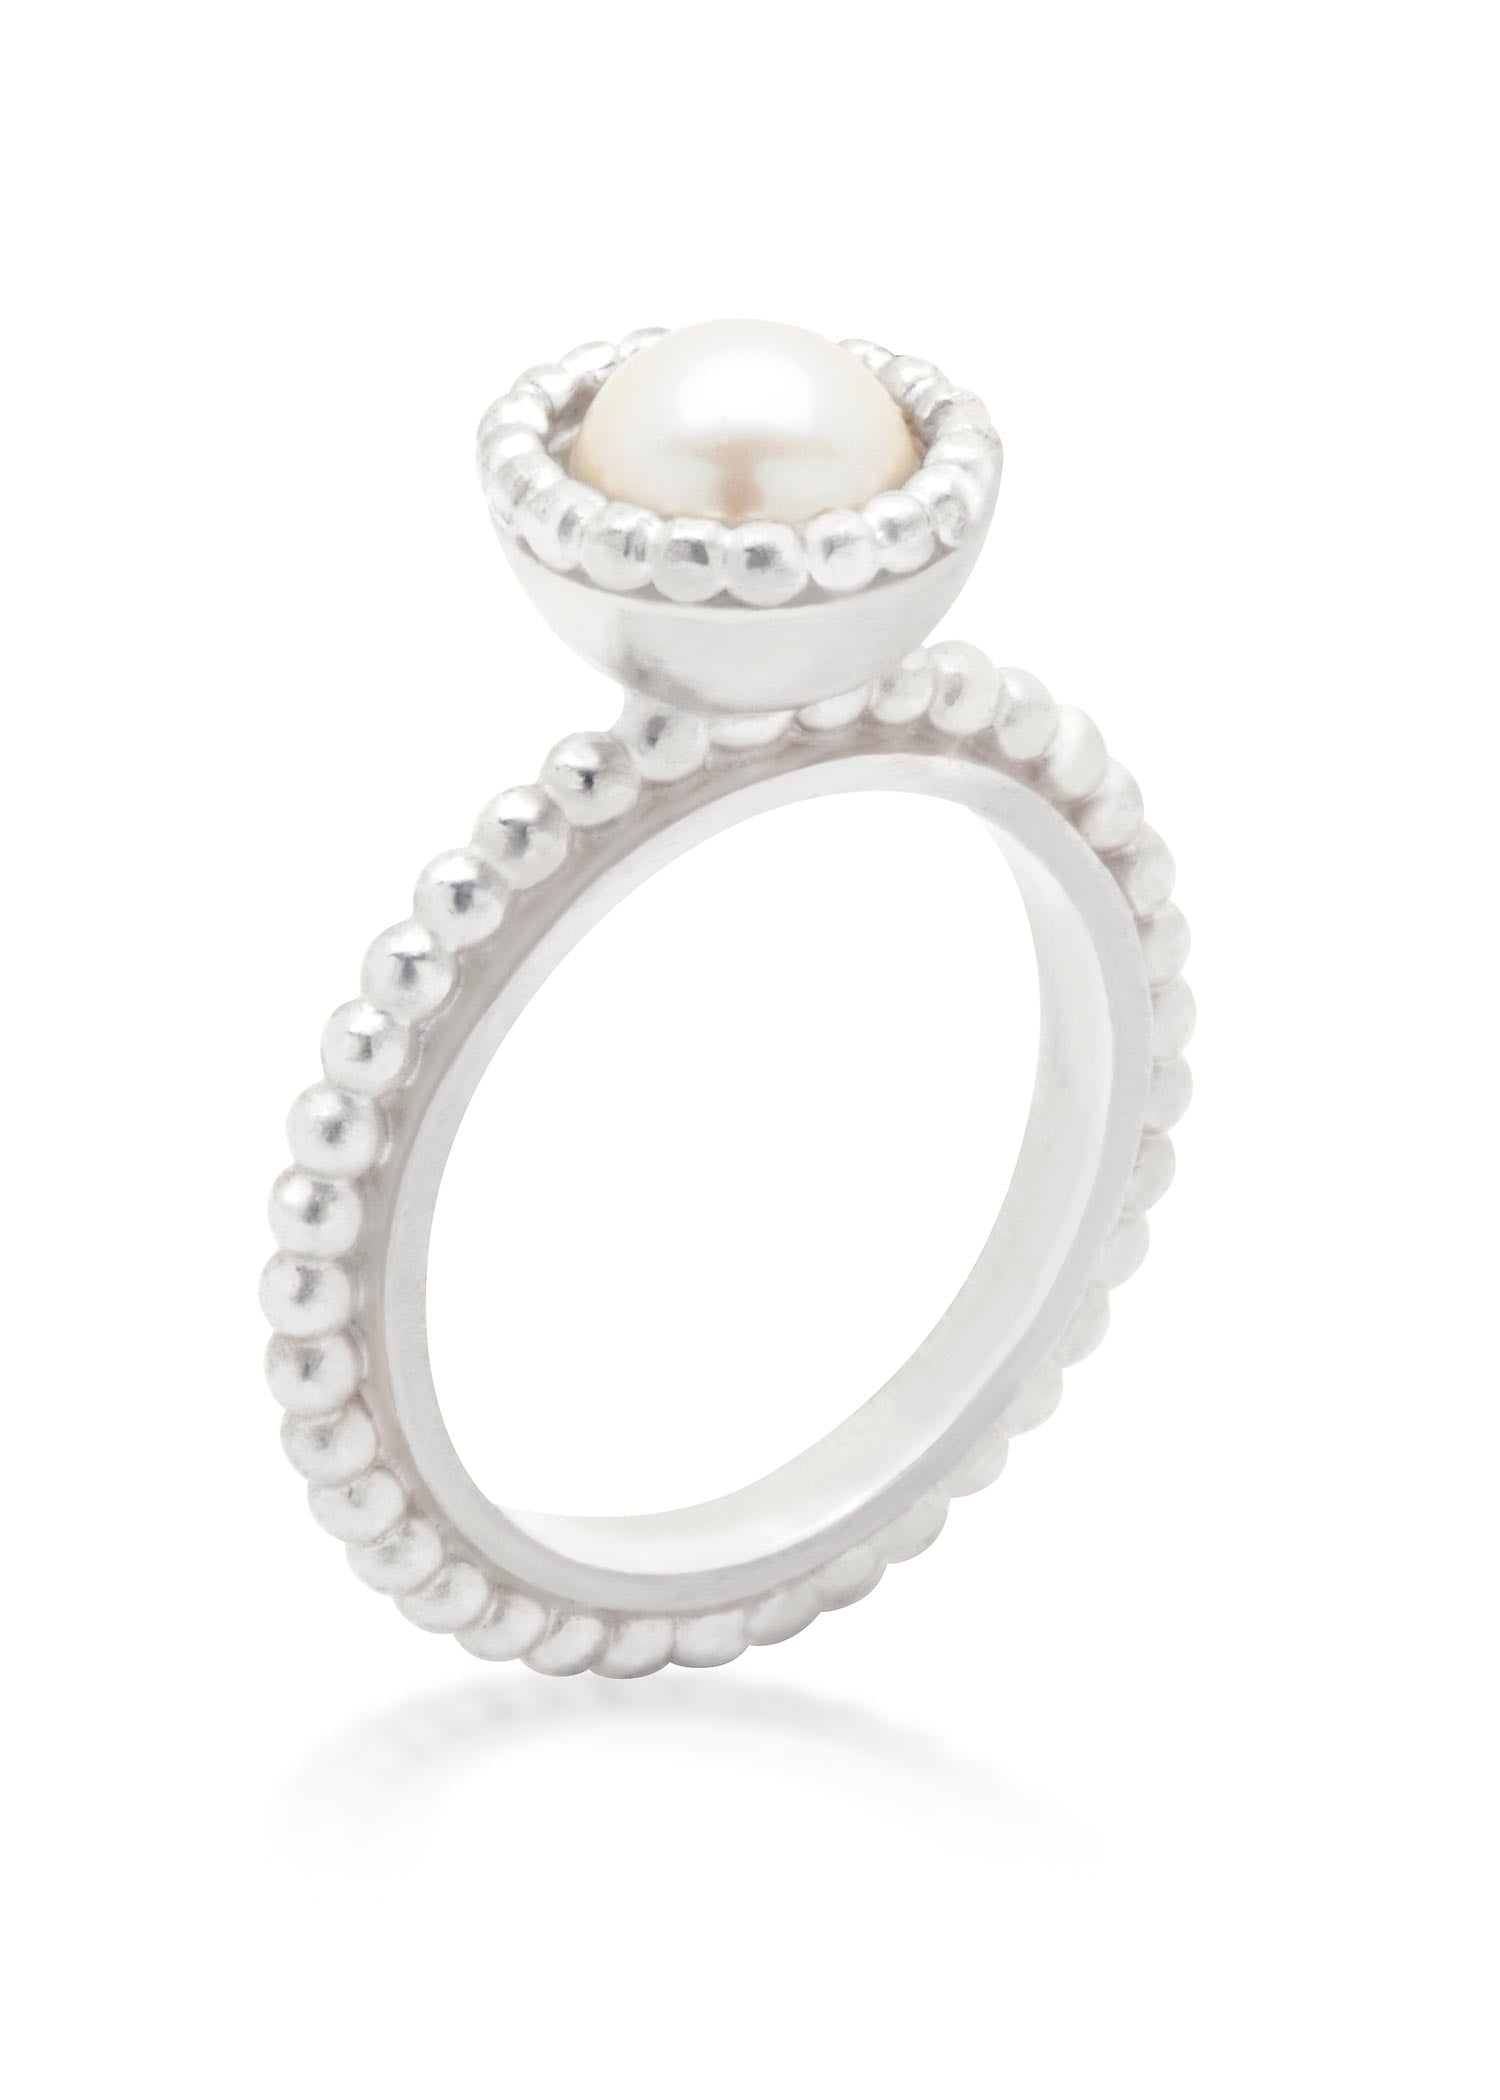 Small Byzantine sterling silver ring with freshwater cream pearl